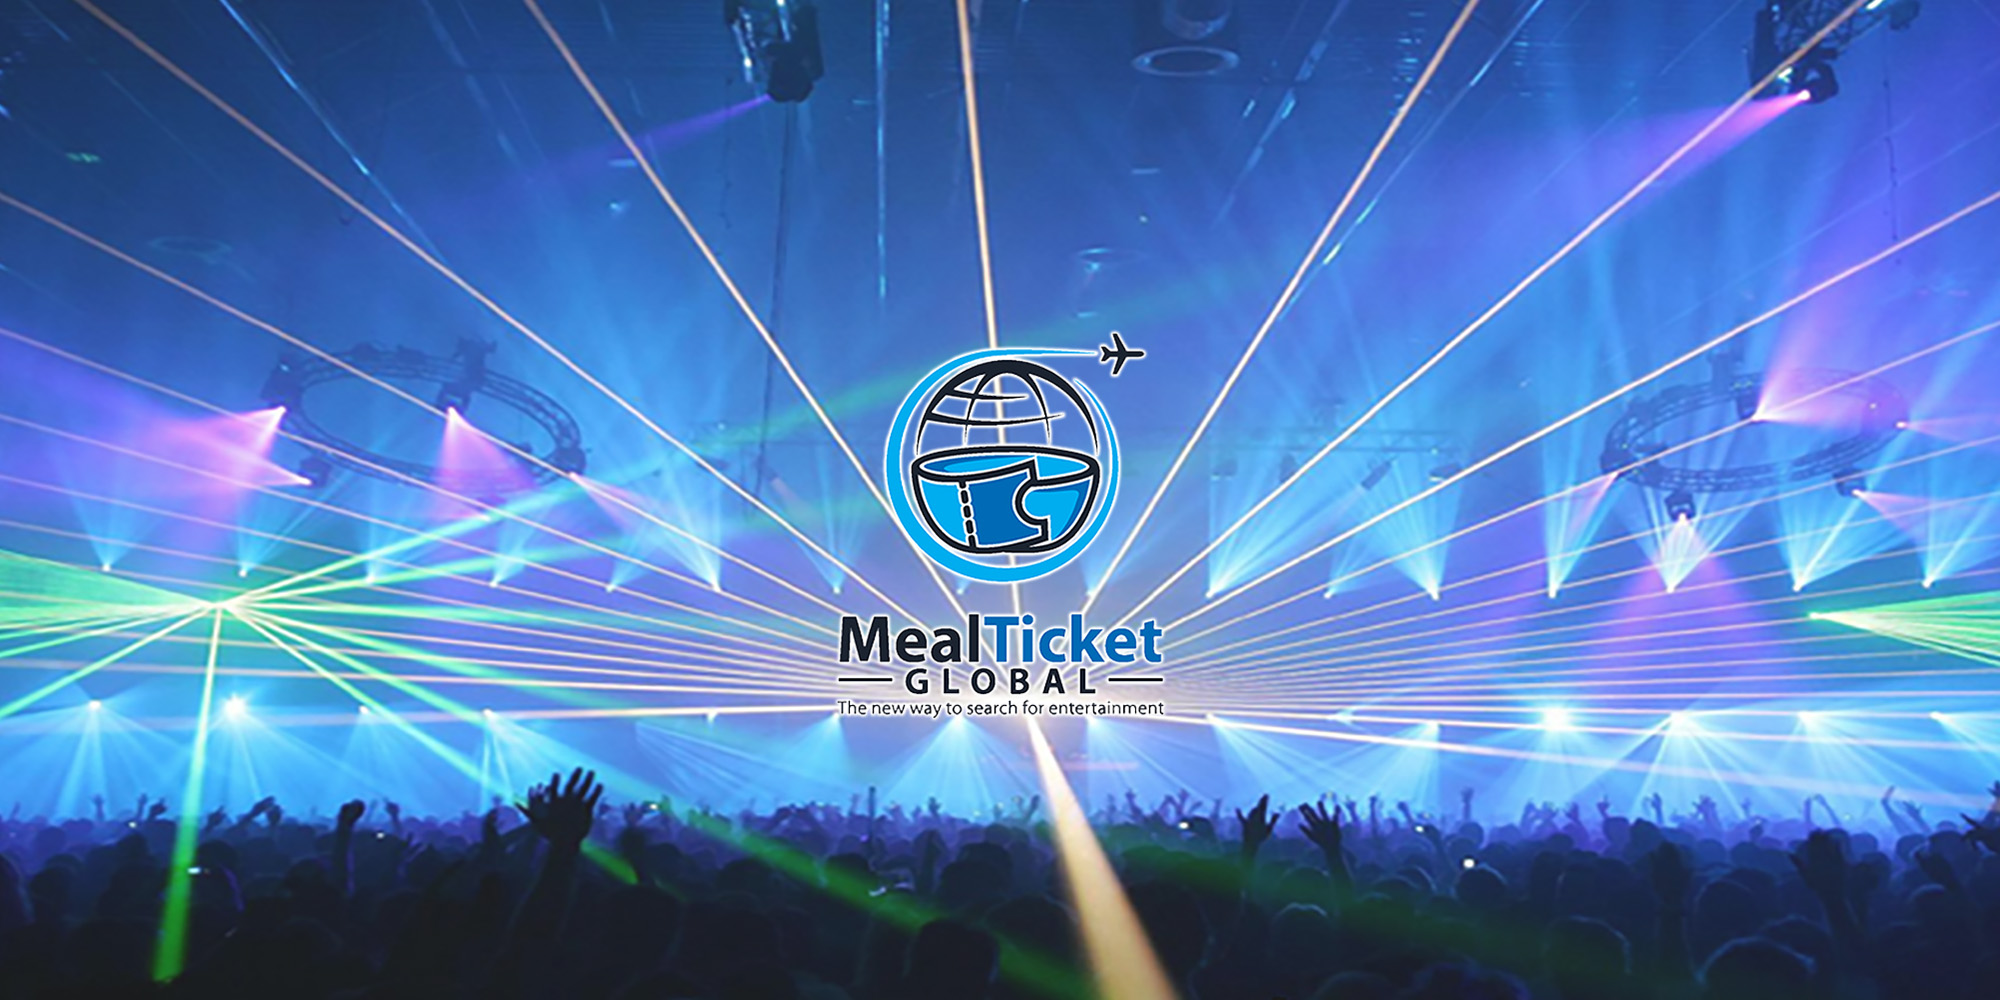 Meal Ticket Global